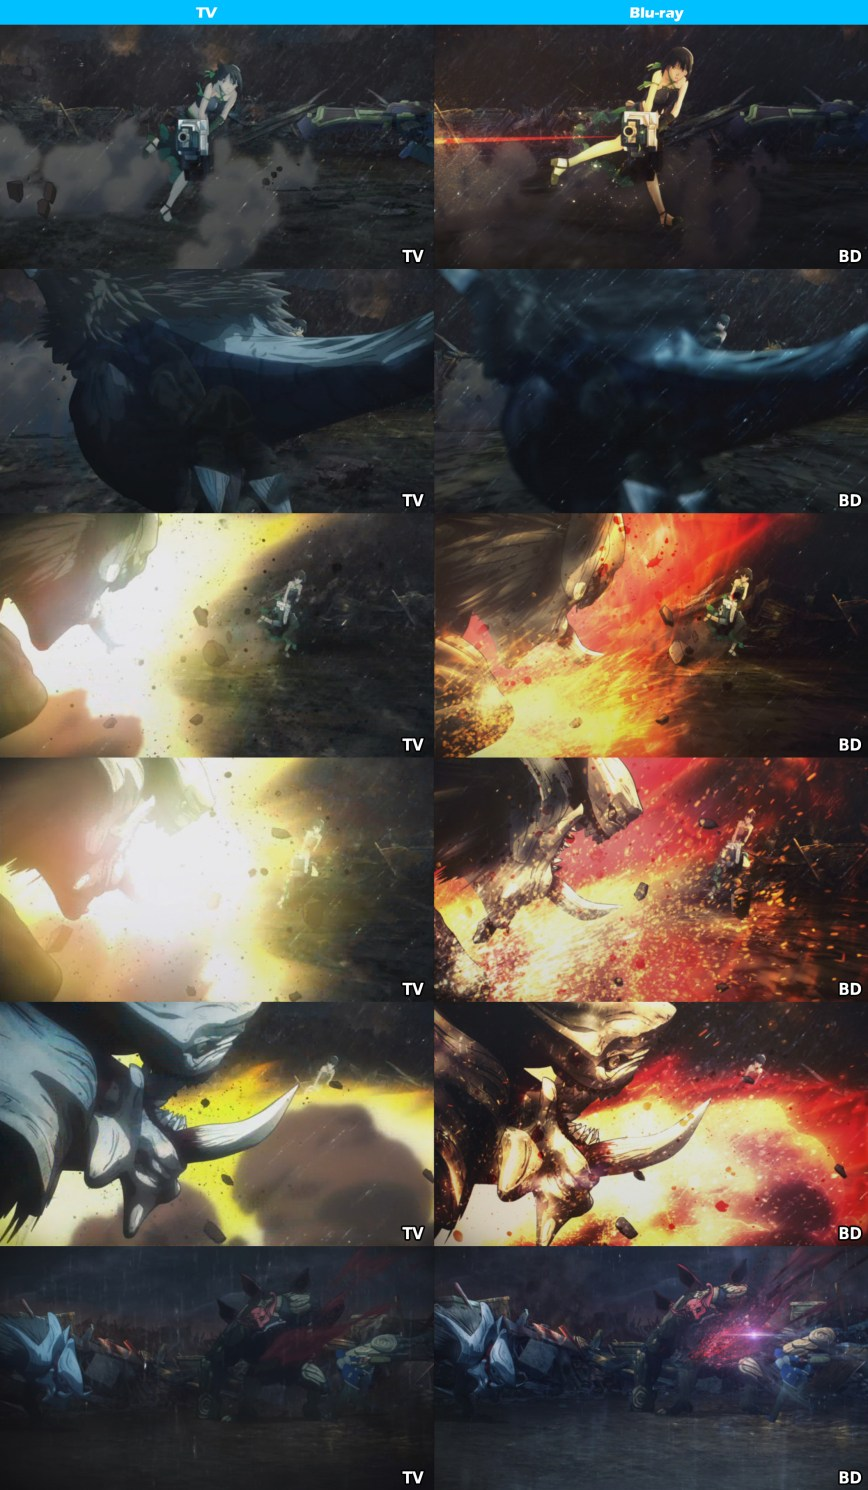 God-Eater-Anime-TV-and-Blu-ray-Comparison-8